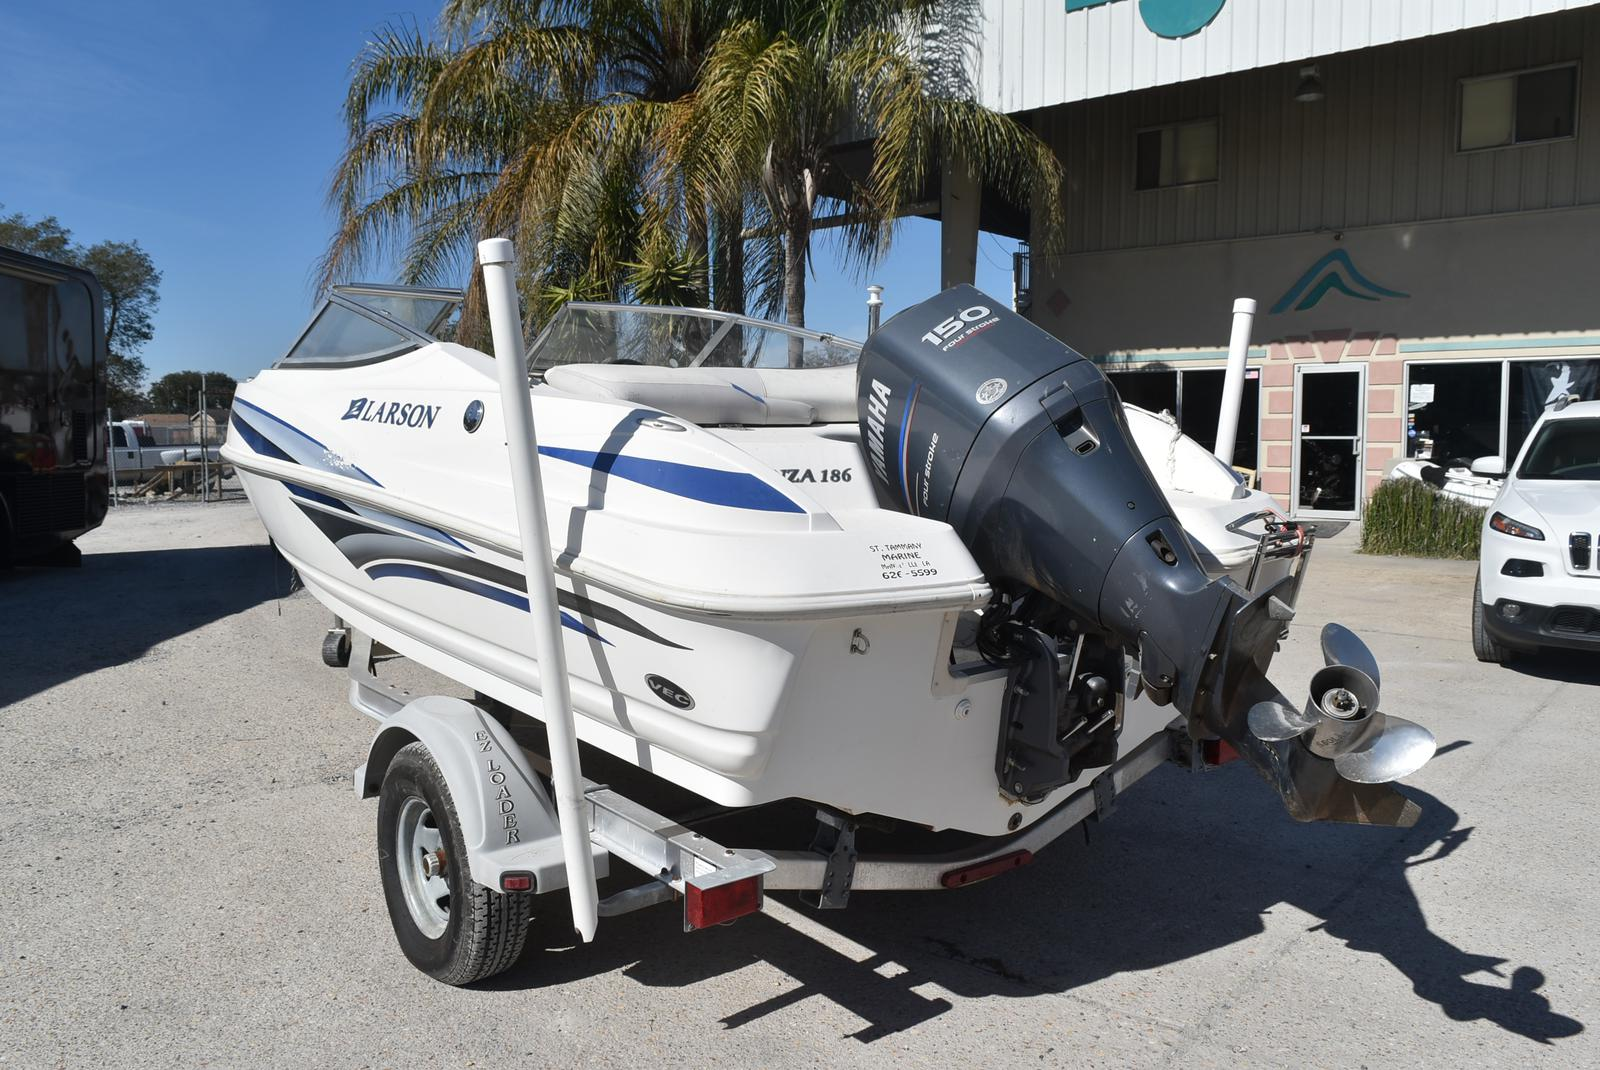 2007 Larson boat for sale, model of the boat is Senza 186 & Image # 6 of 15